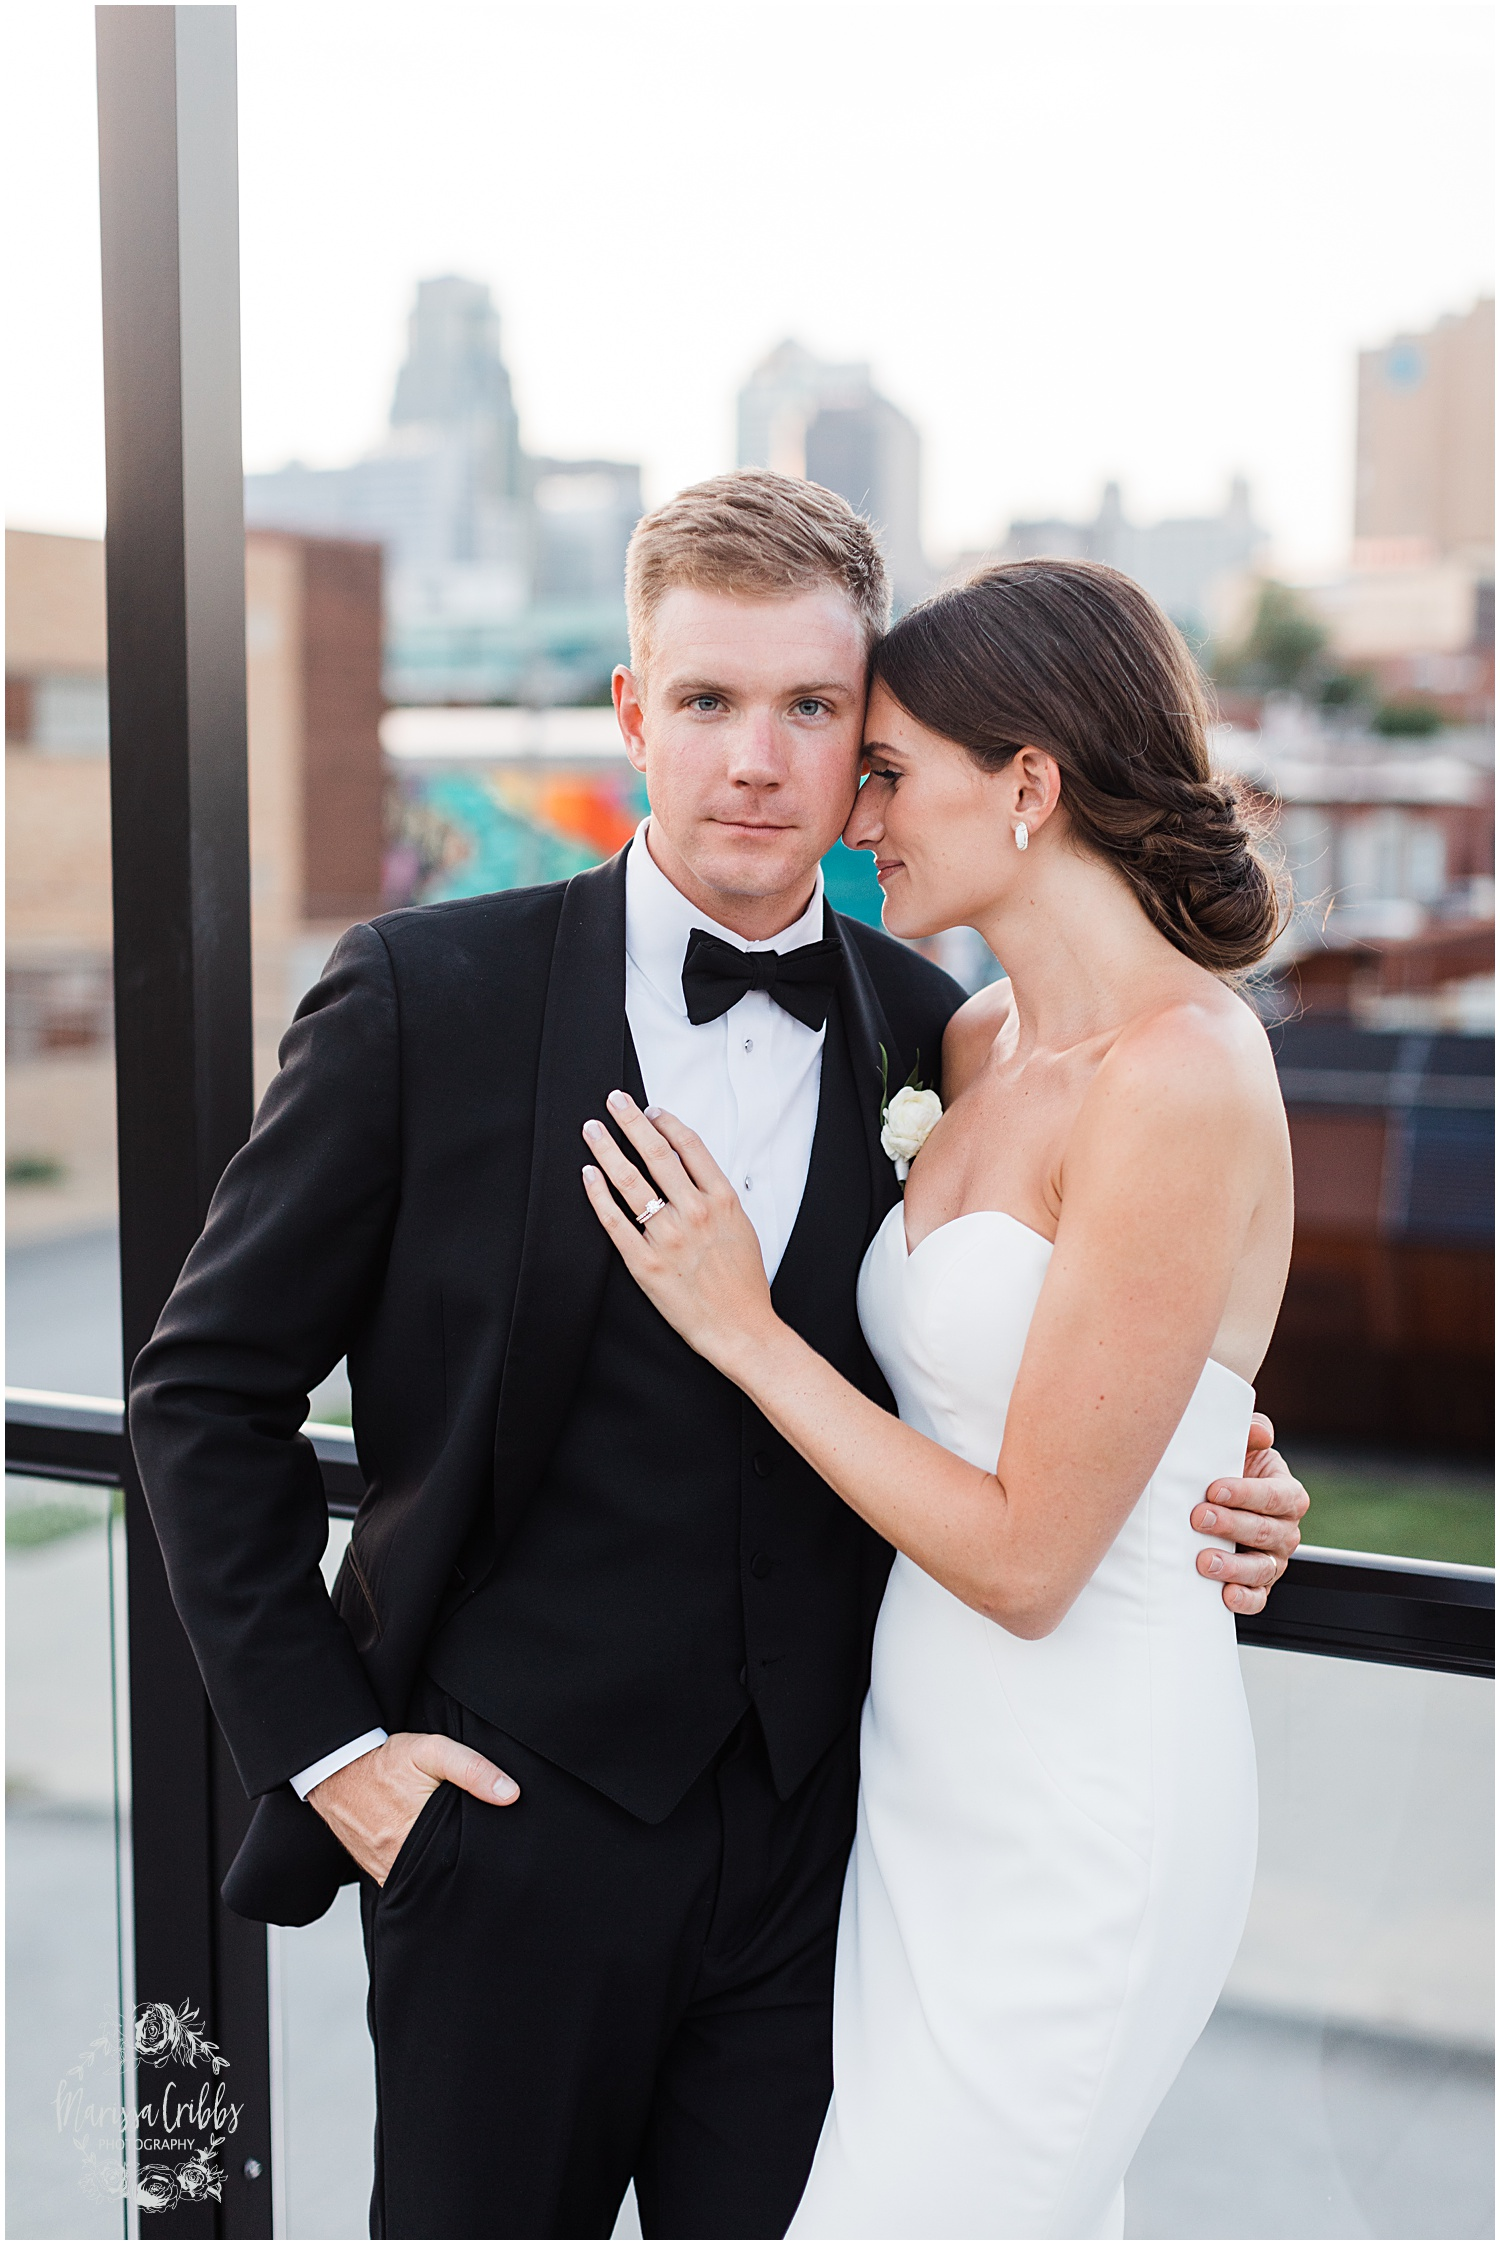 JOANNE & GEORGE MARRIED BLOG | MARISSA CRIBBS PHOTOGRAPHY | THE ABBOTT | KANSAS CITY WEDDING PHOTOS_9173.jpg